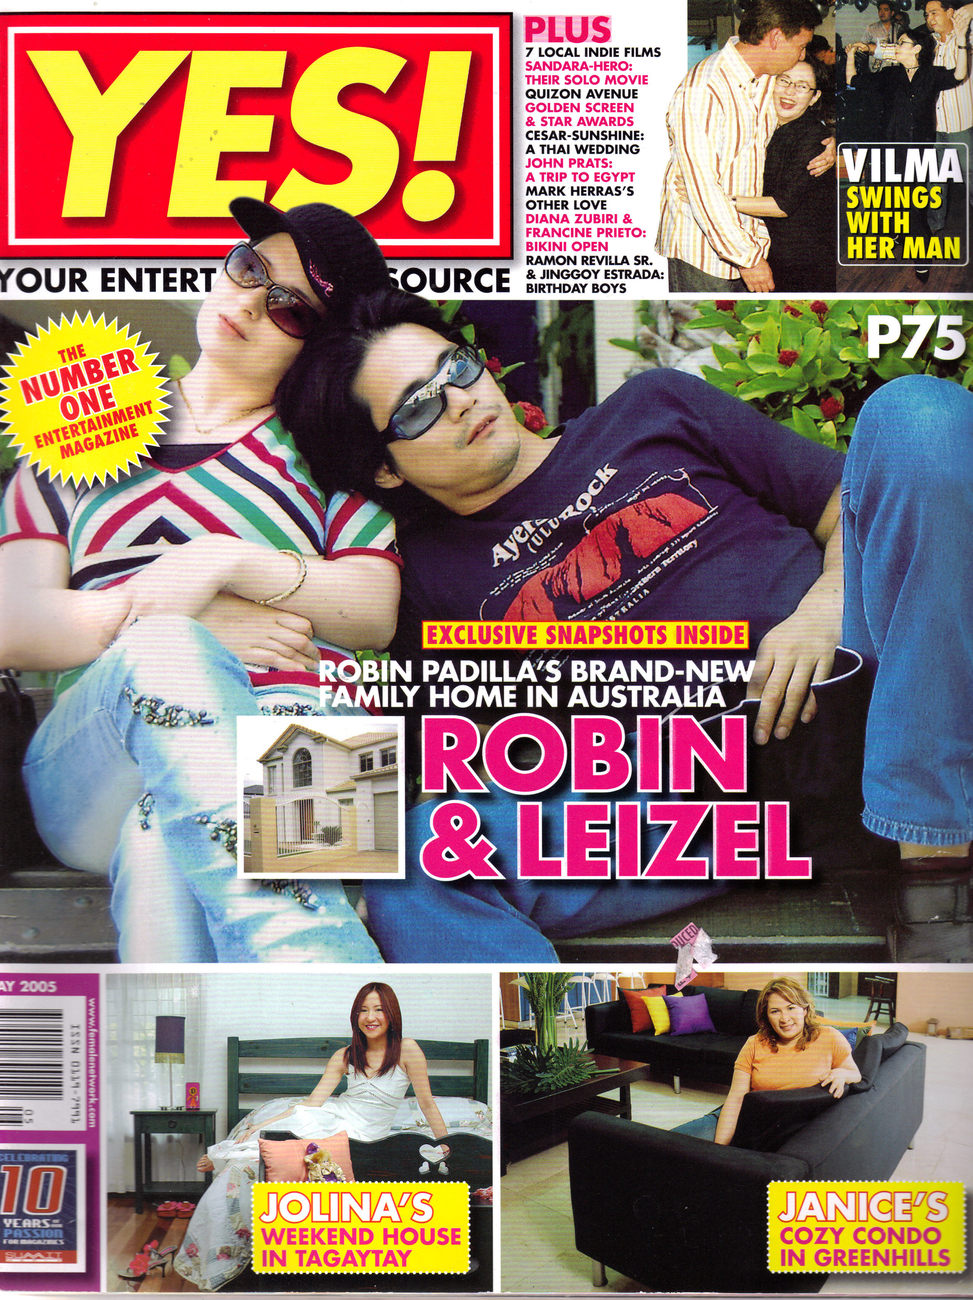 ROBIN PADILLA IN QUEENSLAND WITH LEIZLE @ YES Magazine May 2